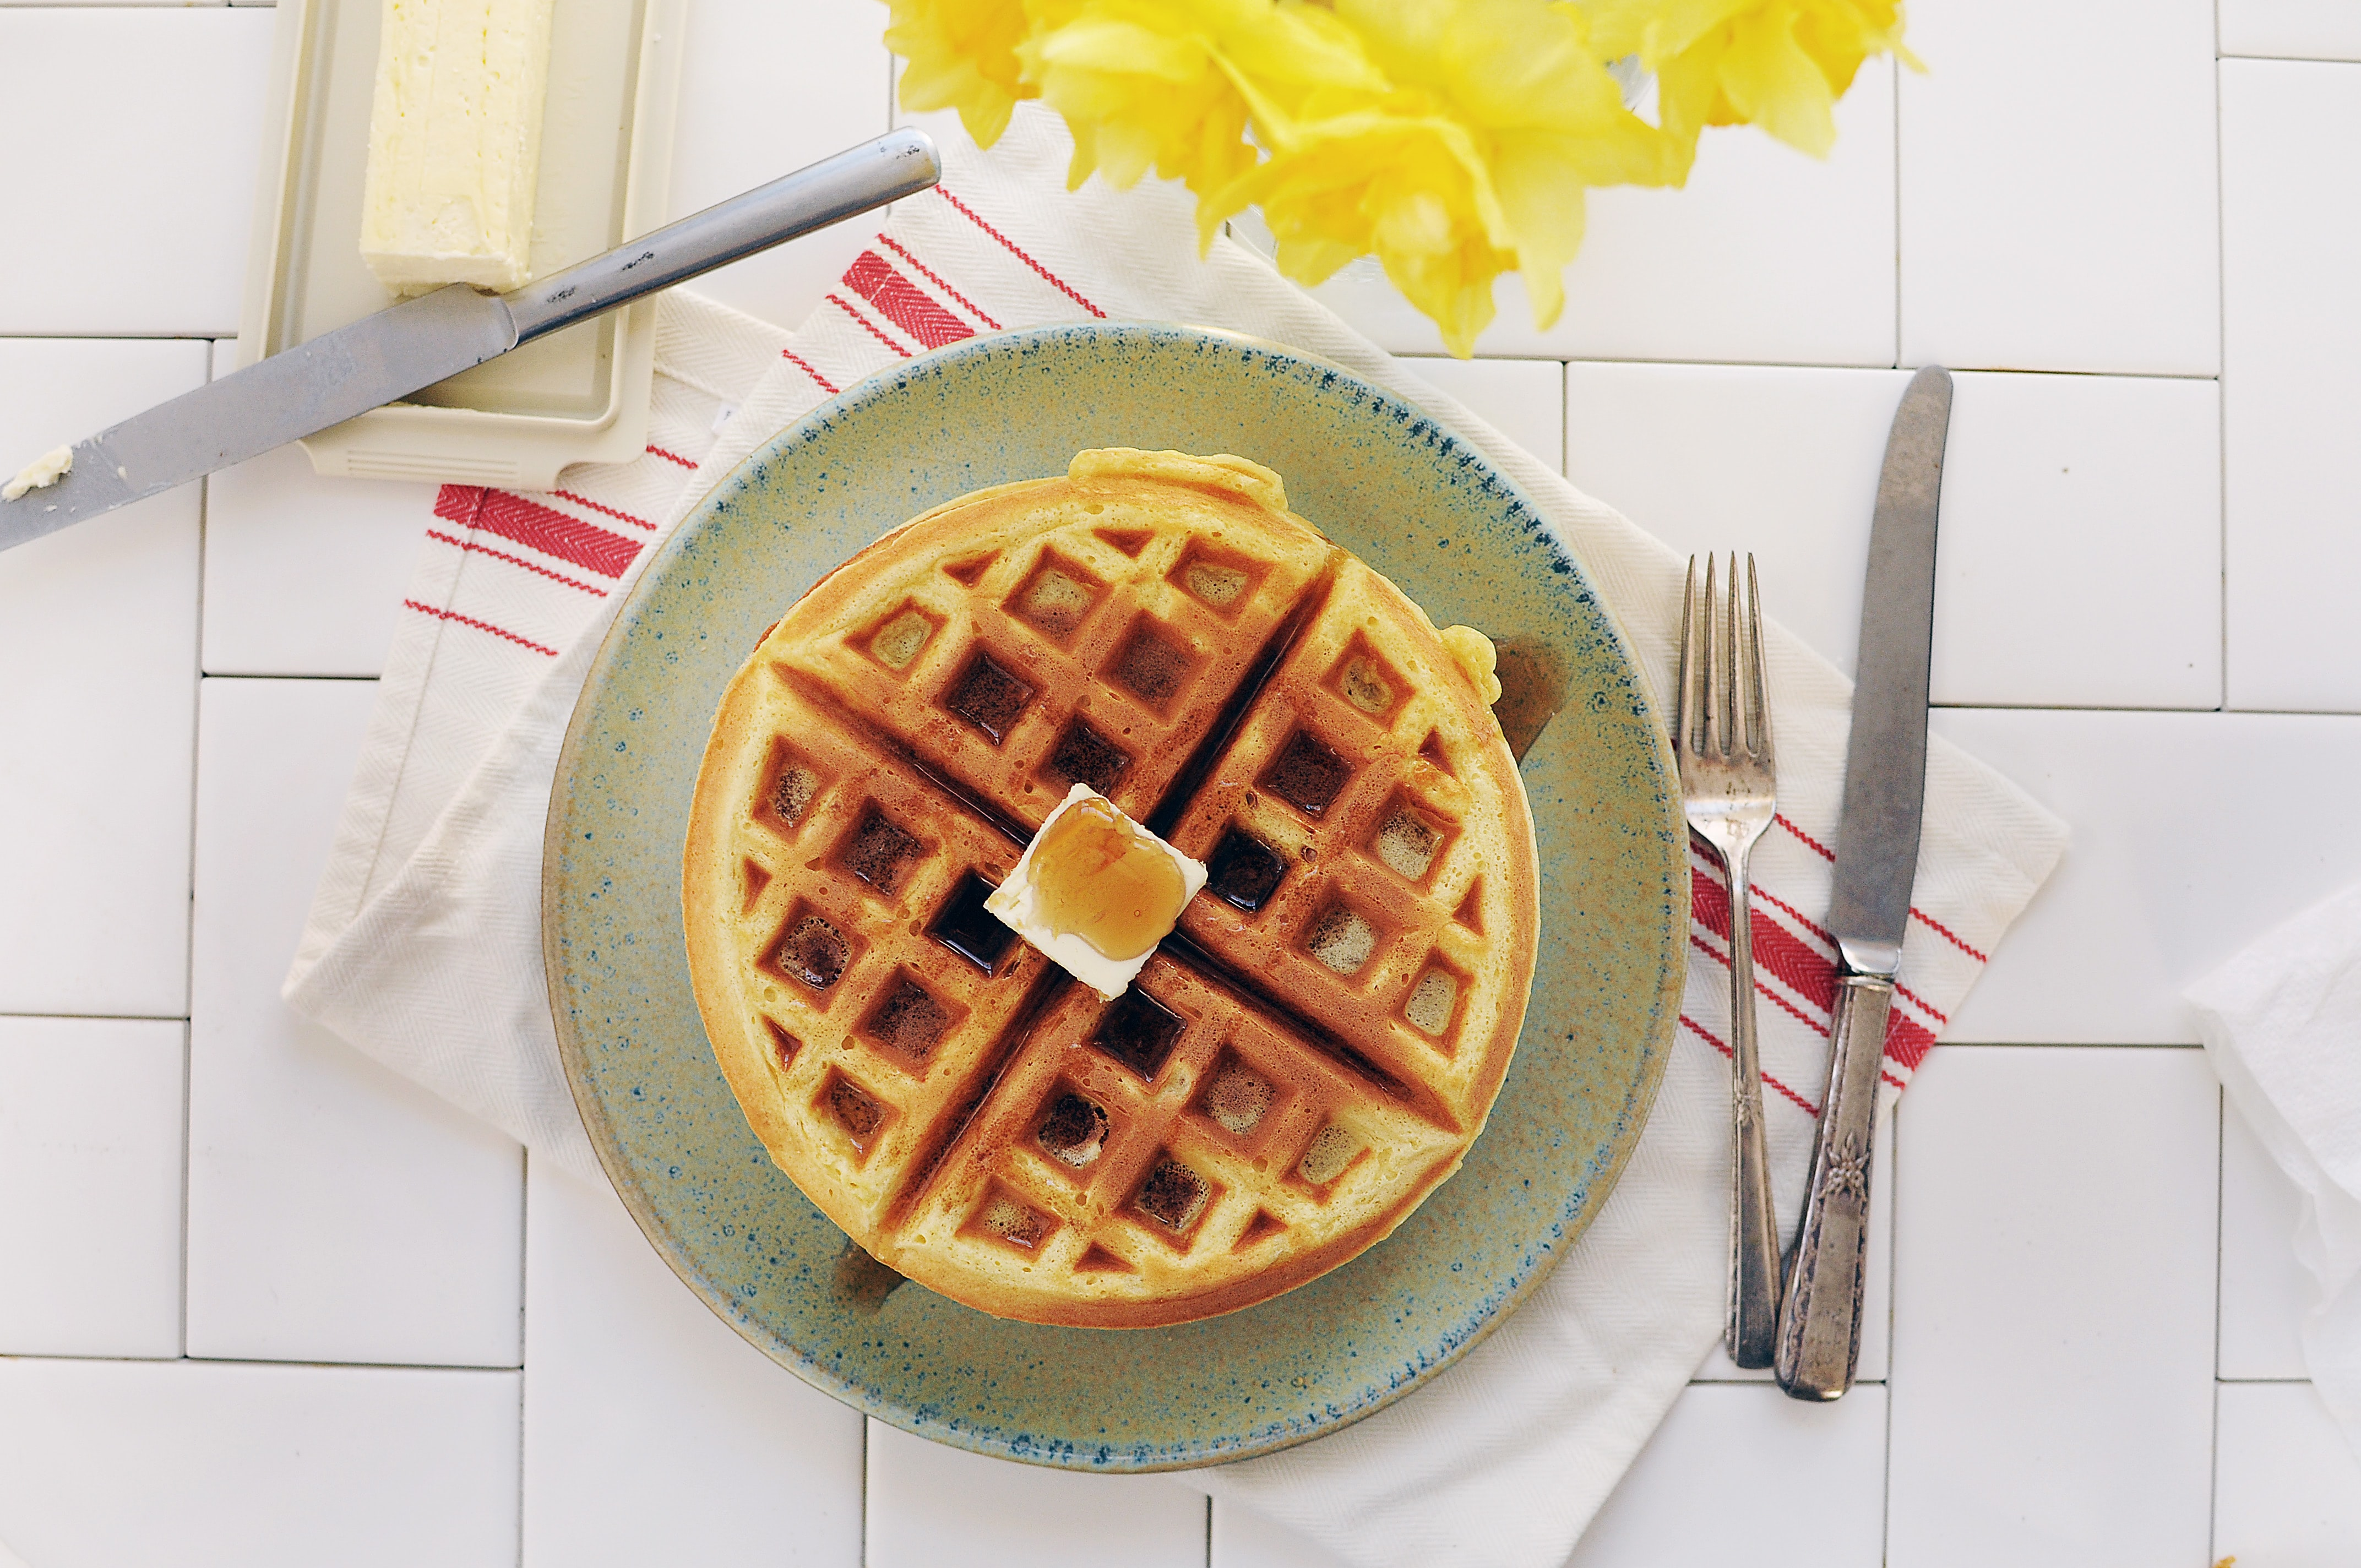 waffle on gray ceramic plate